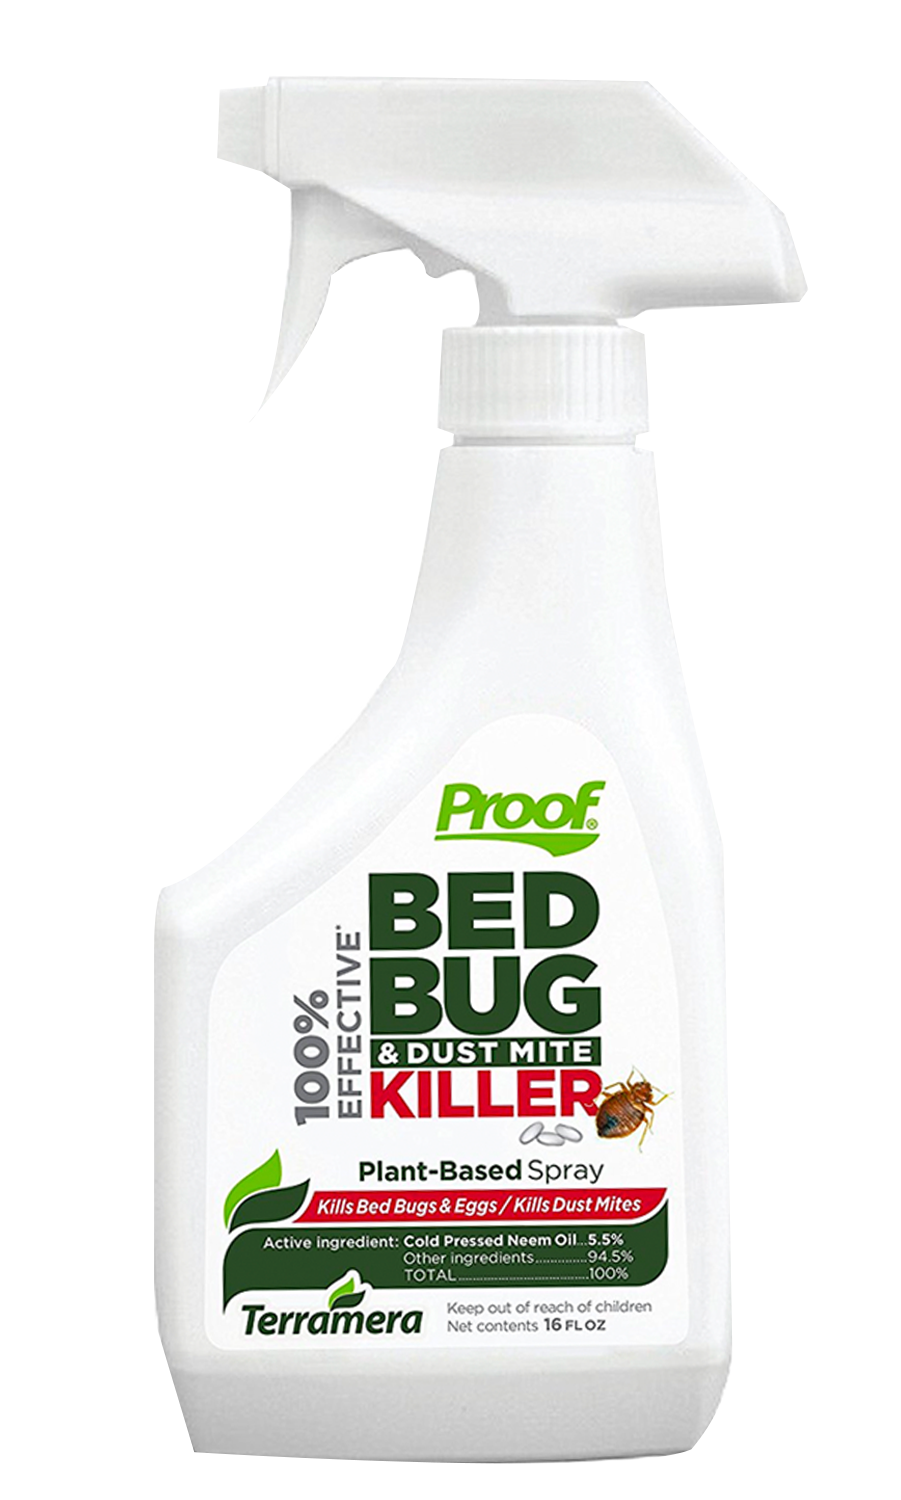 Bed Bug Killer Spray Photo